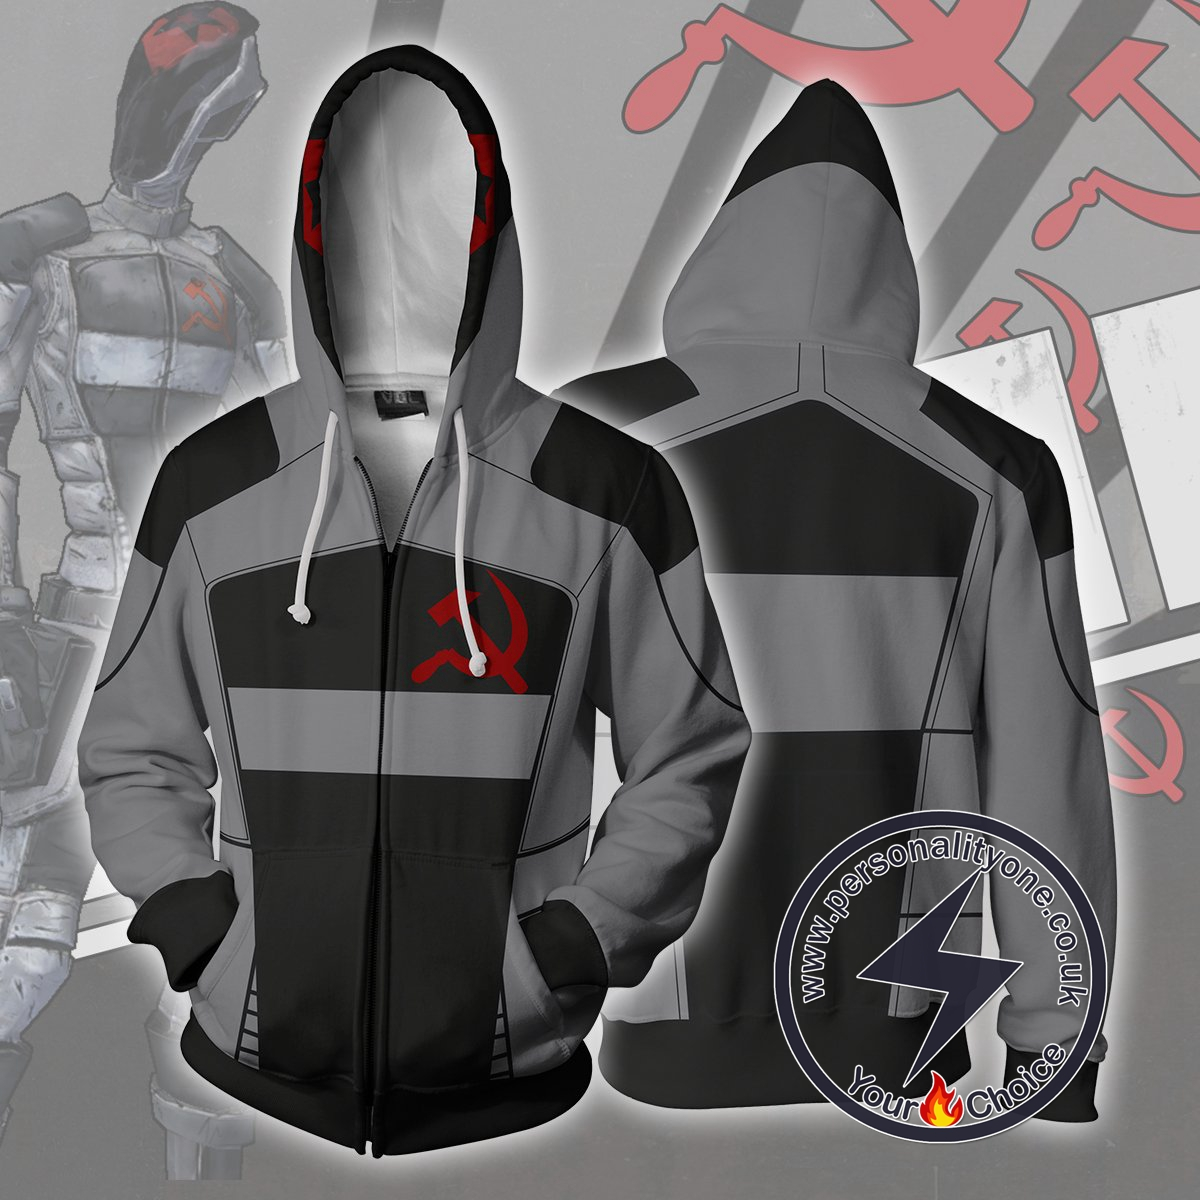 Borderlands Hoodie - Vladof Sickle Skin Jacket